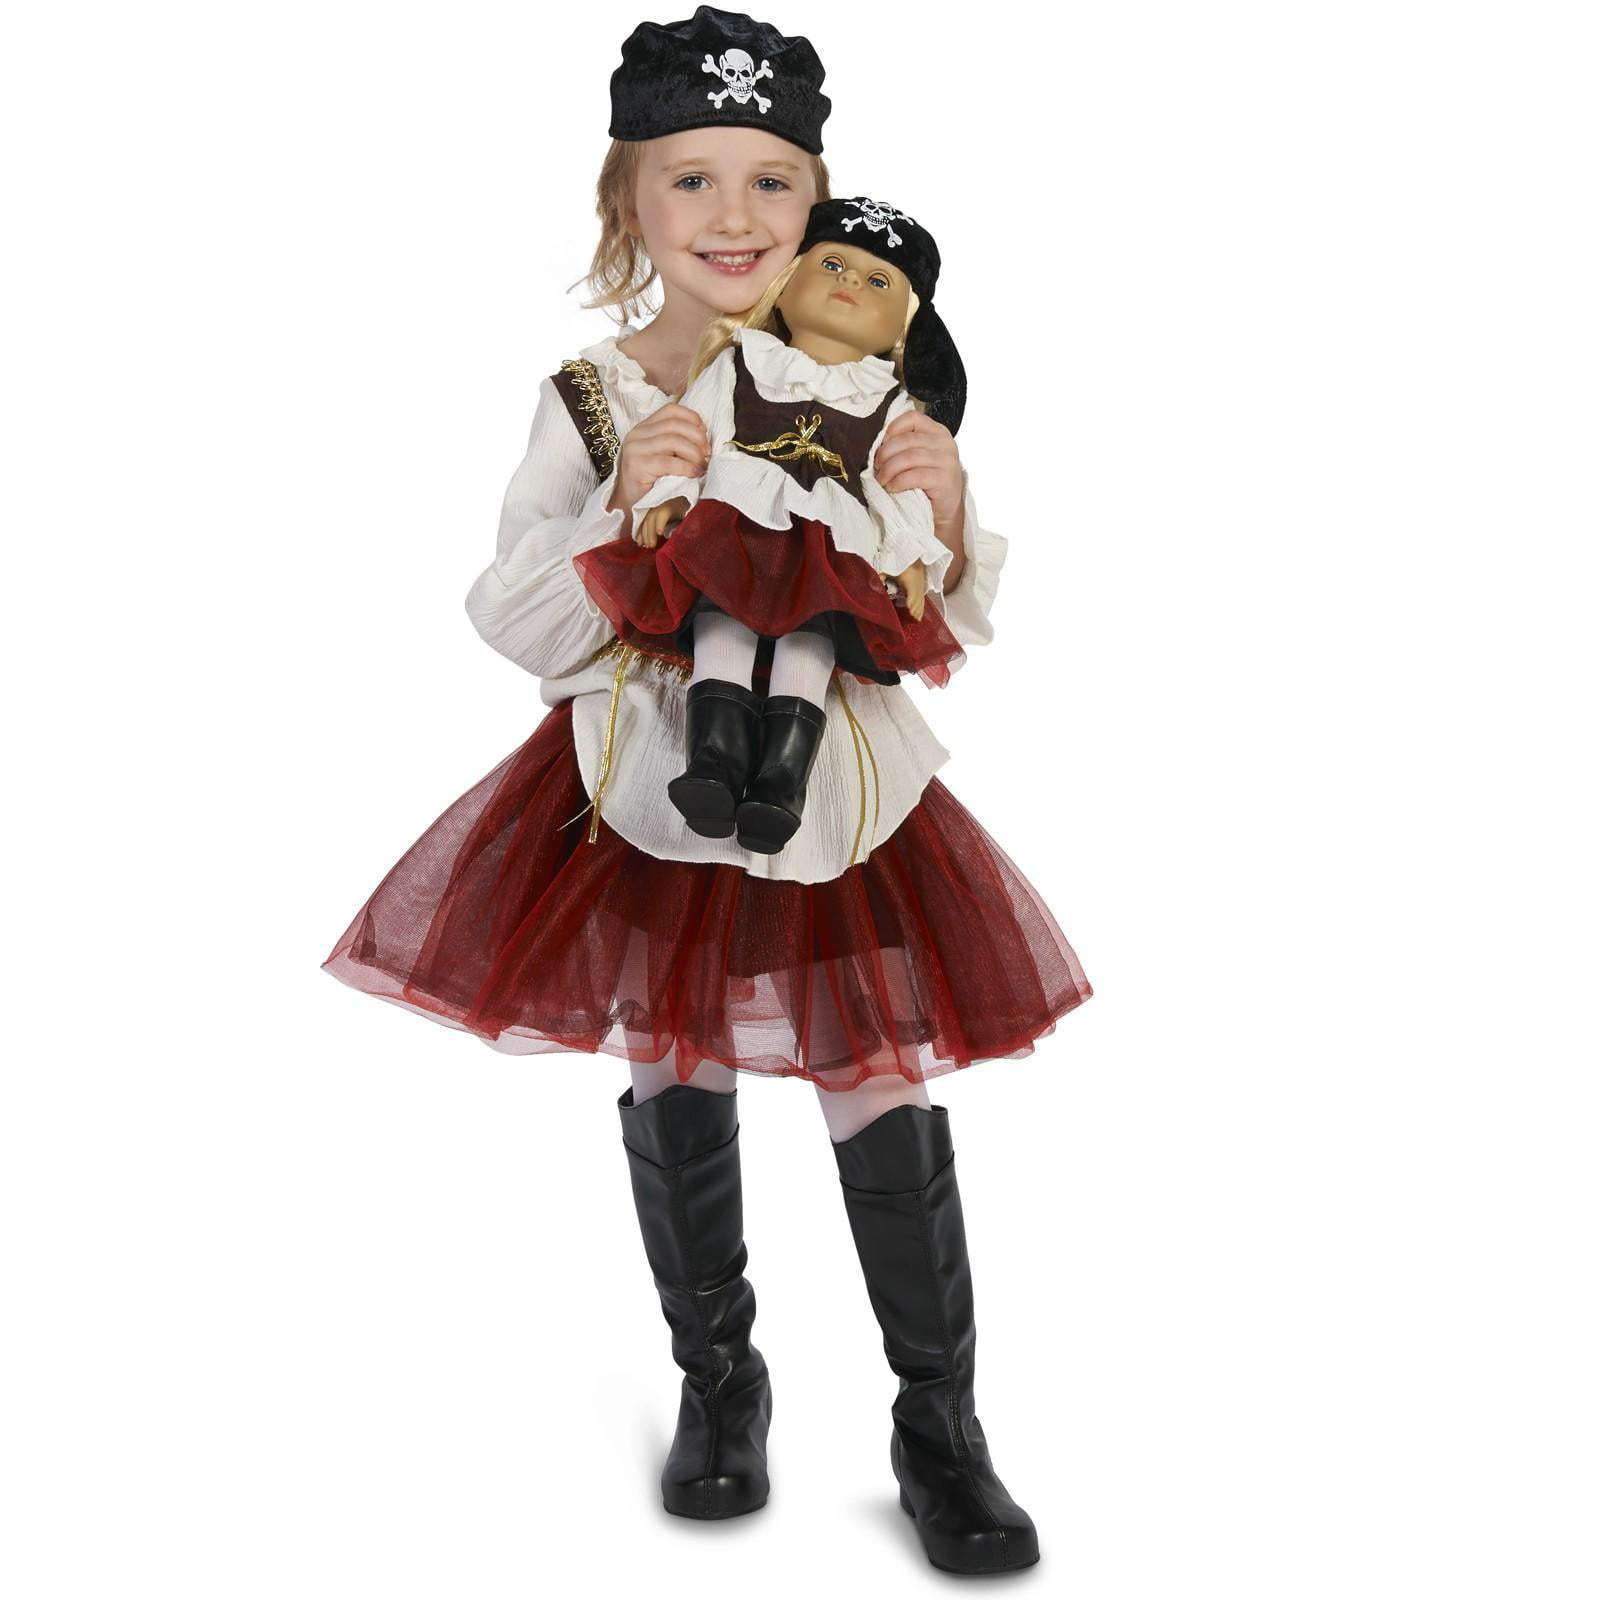 "Pirate Tutu Girl Child Costume M (8-10) with Matching 18"" Doll Costume by Generic"